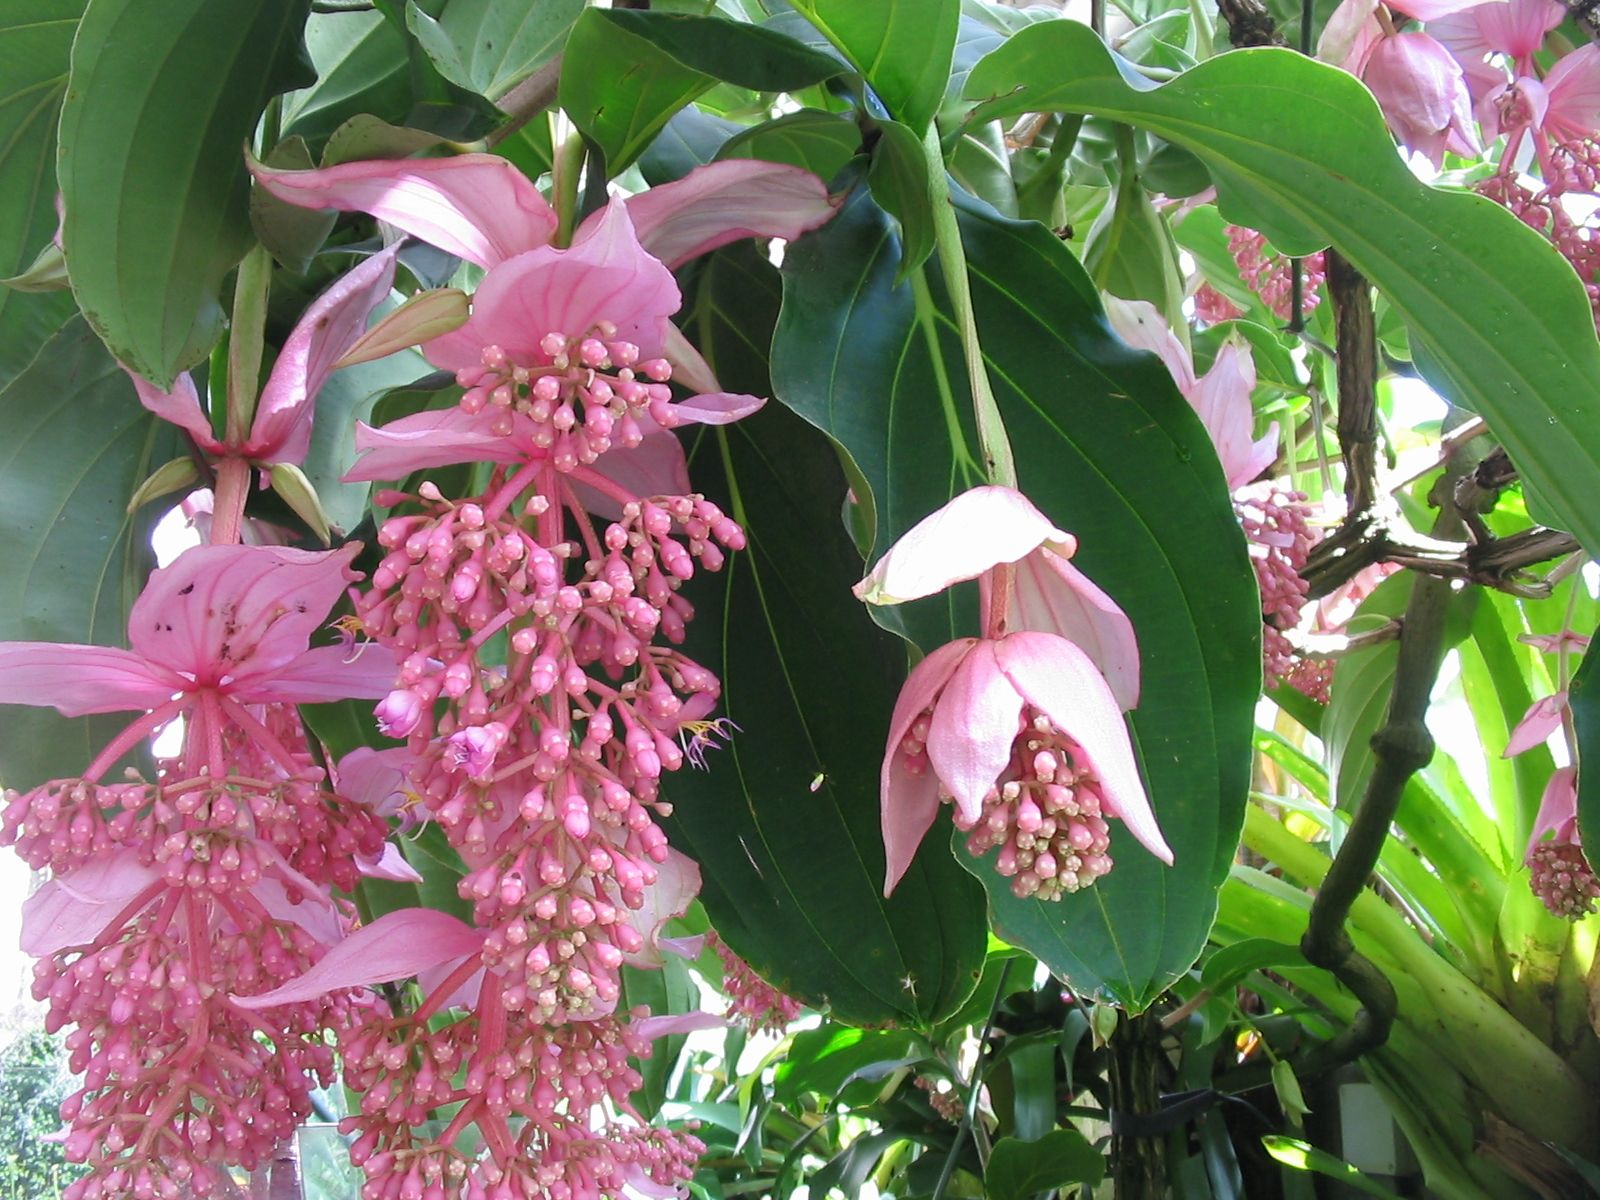 Best Kitchen Gallery: Medinilla Magnifica Aka The Malaysian Orchid Or The Pink Lantern of Pink And Green Tropical Houseplants on rachelxblog.com